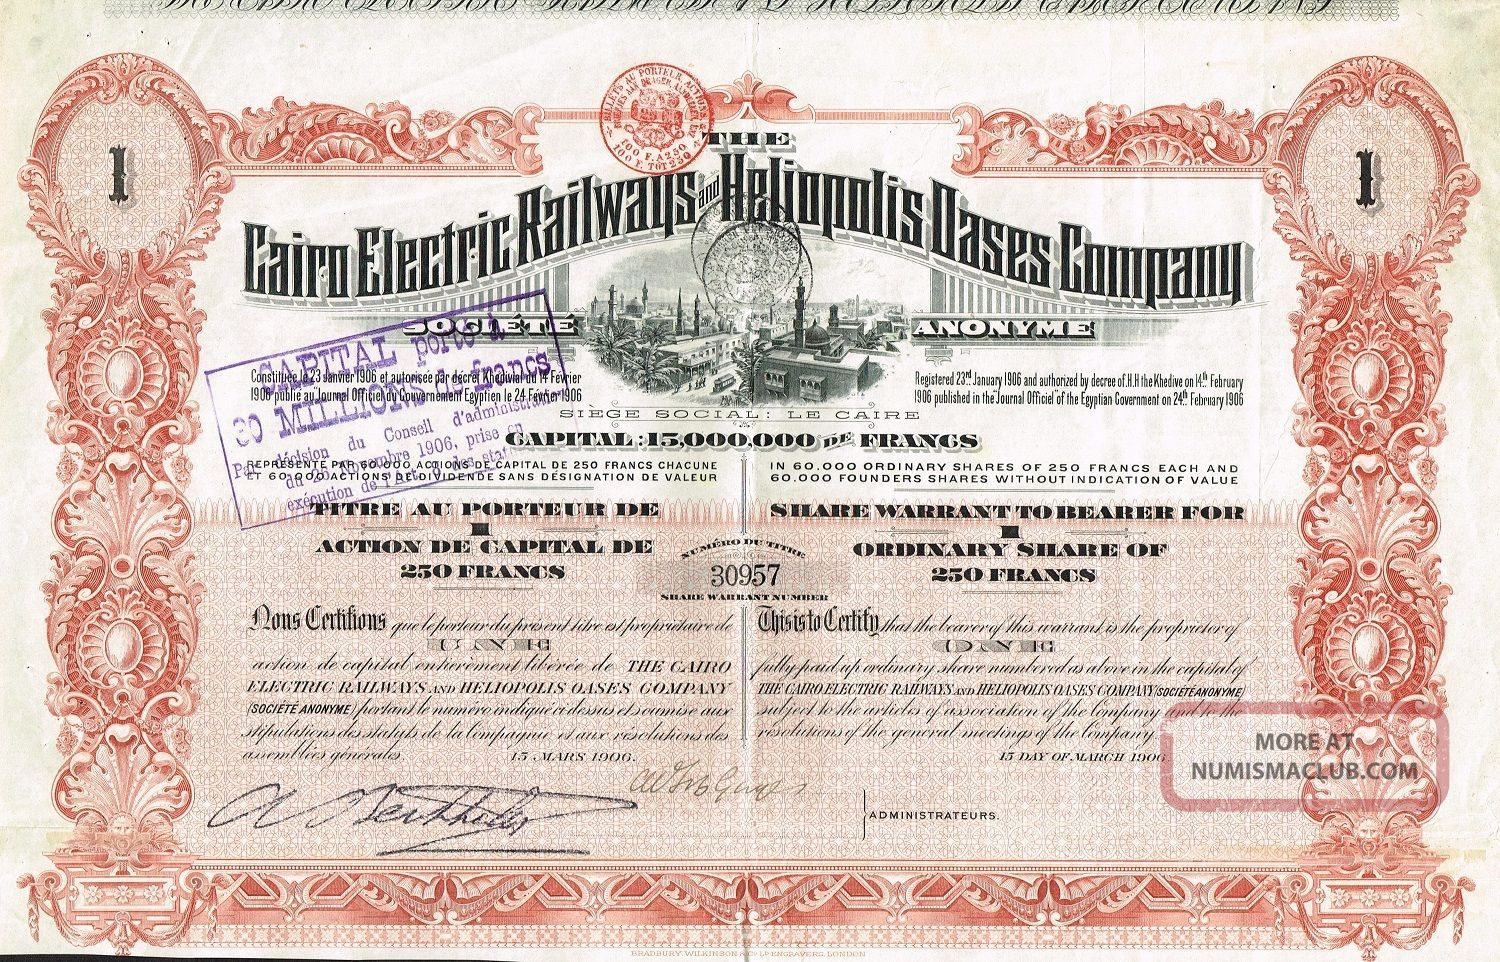 Egypt Cairo Electric Reailways Company Stock Certificate 1906 World photo